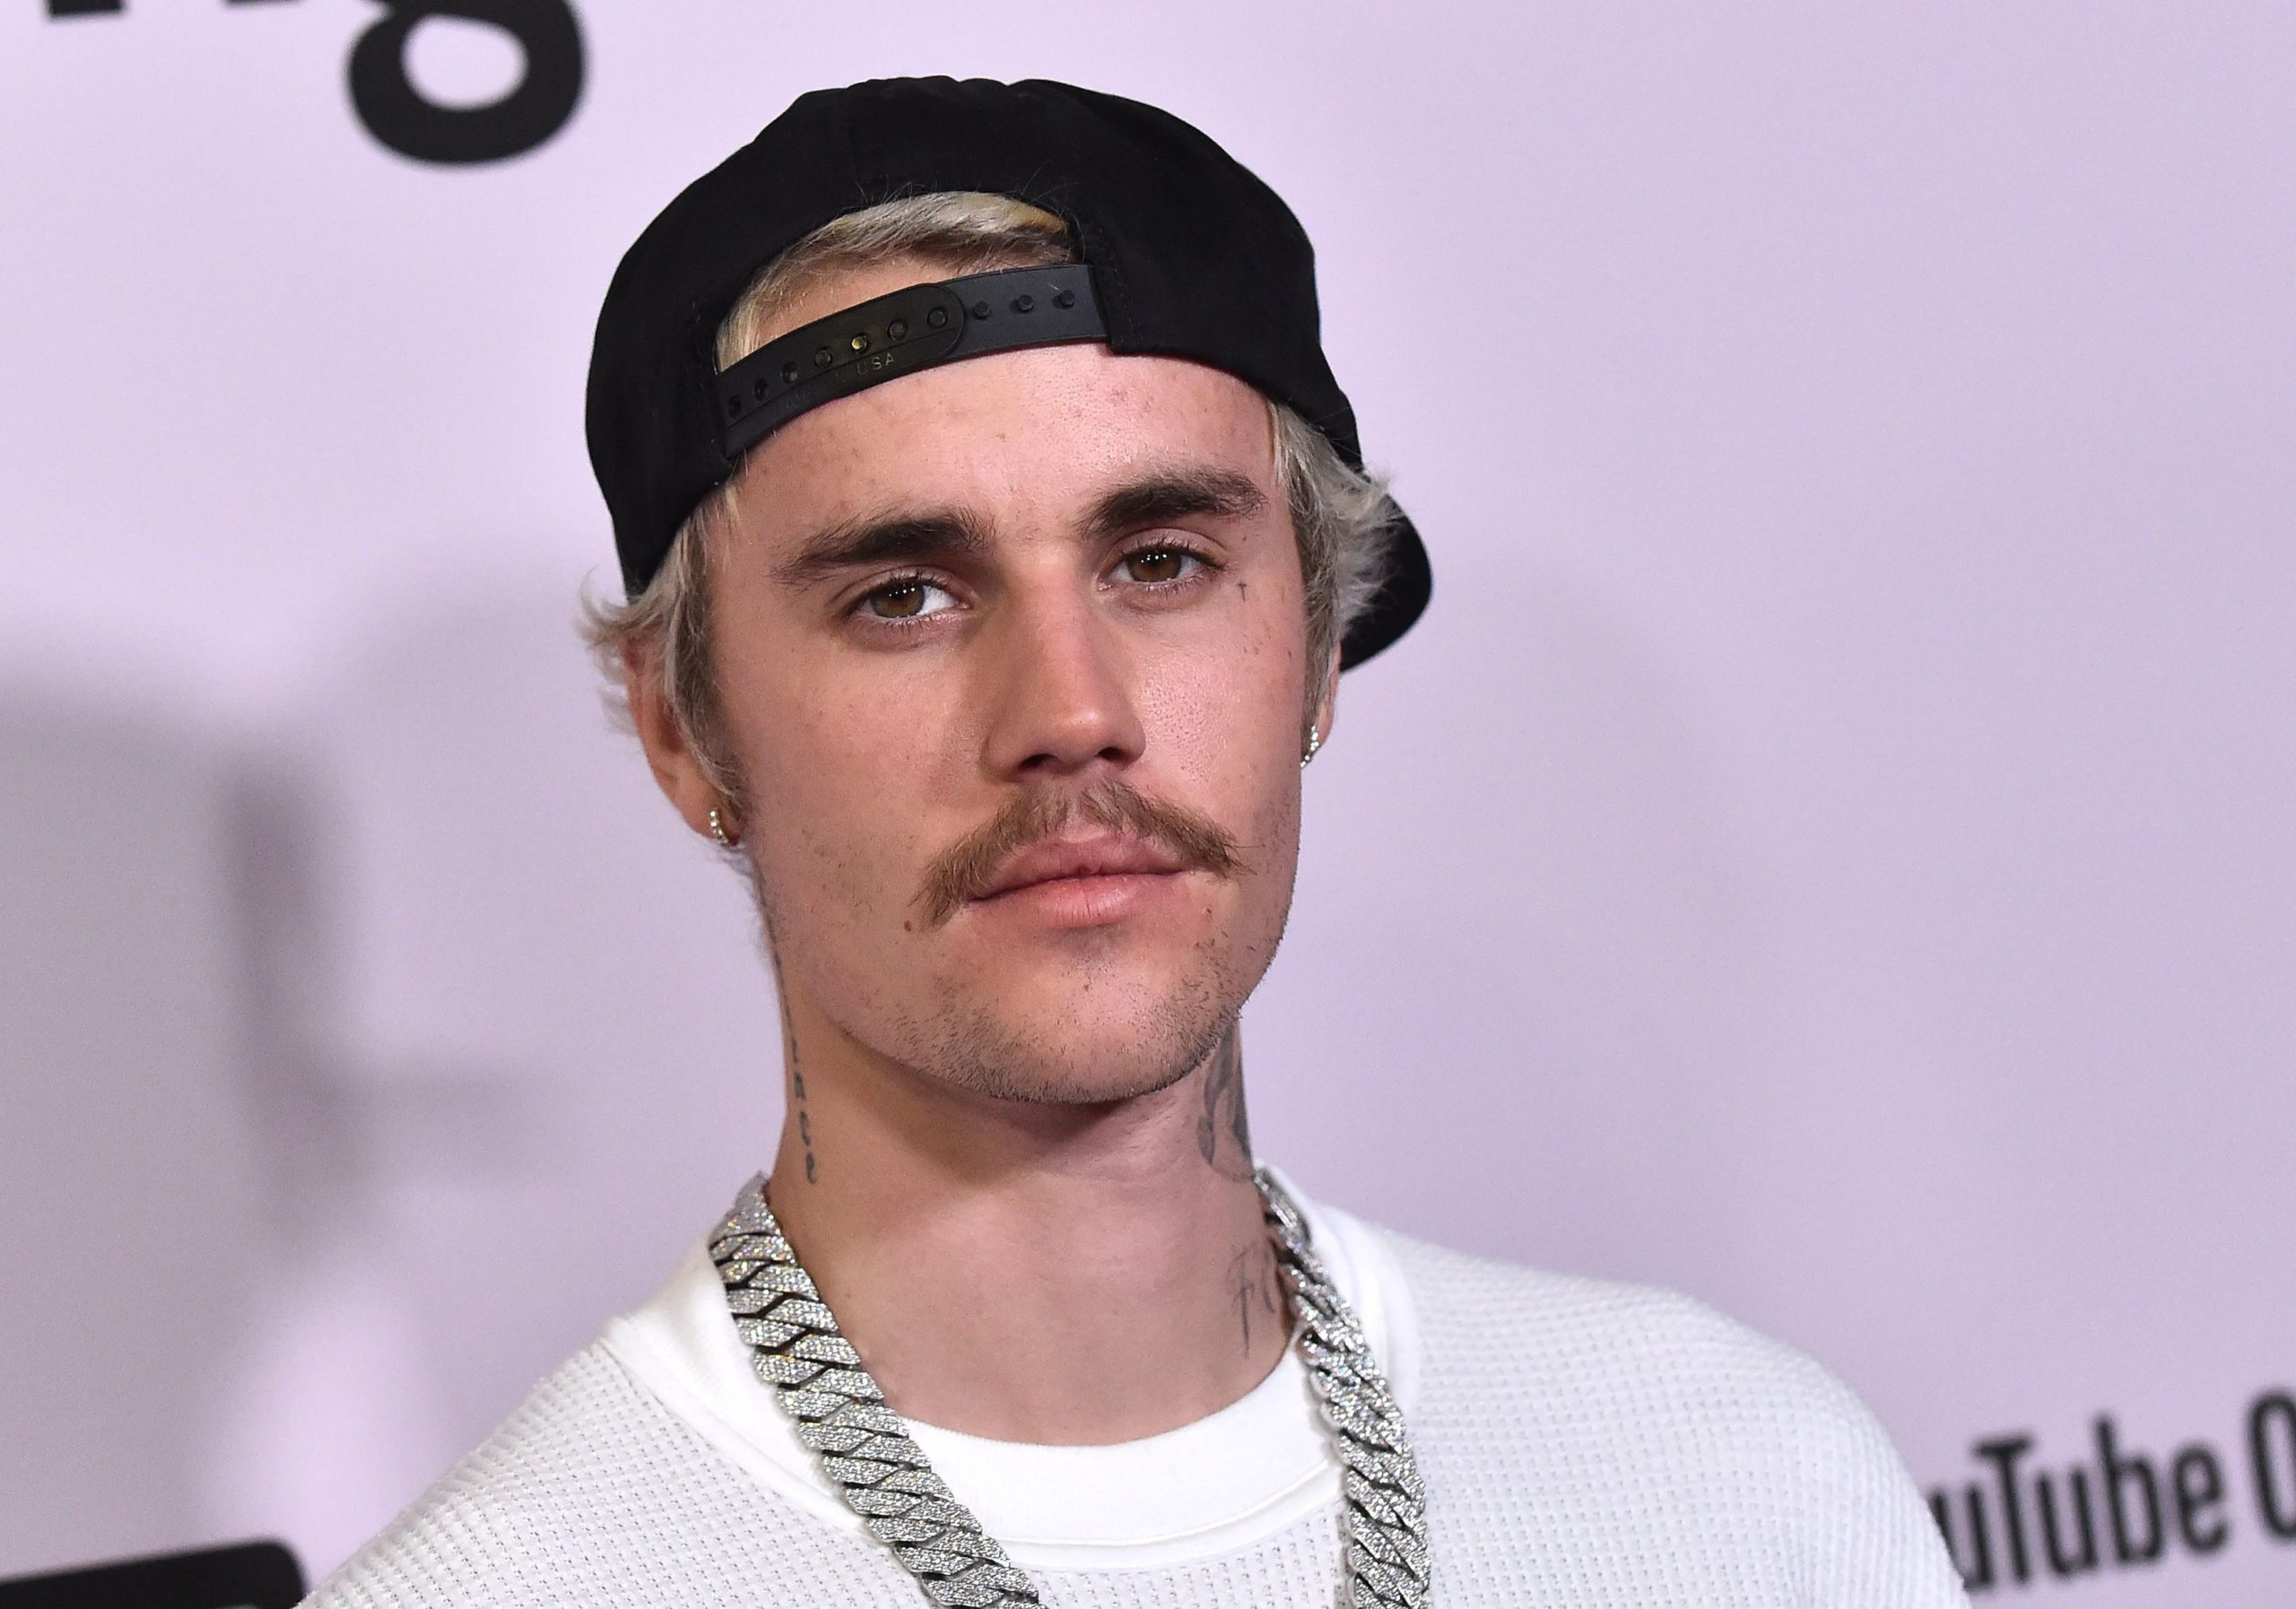 Justin Bieber To Return With A New Era of Music